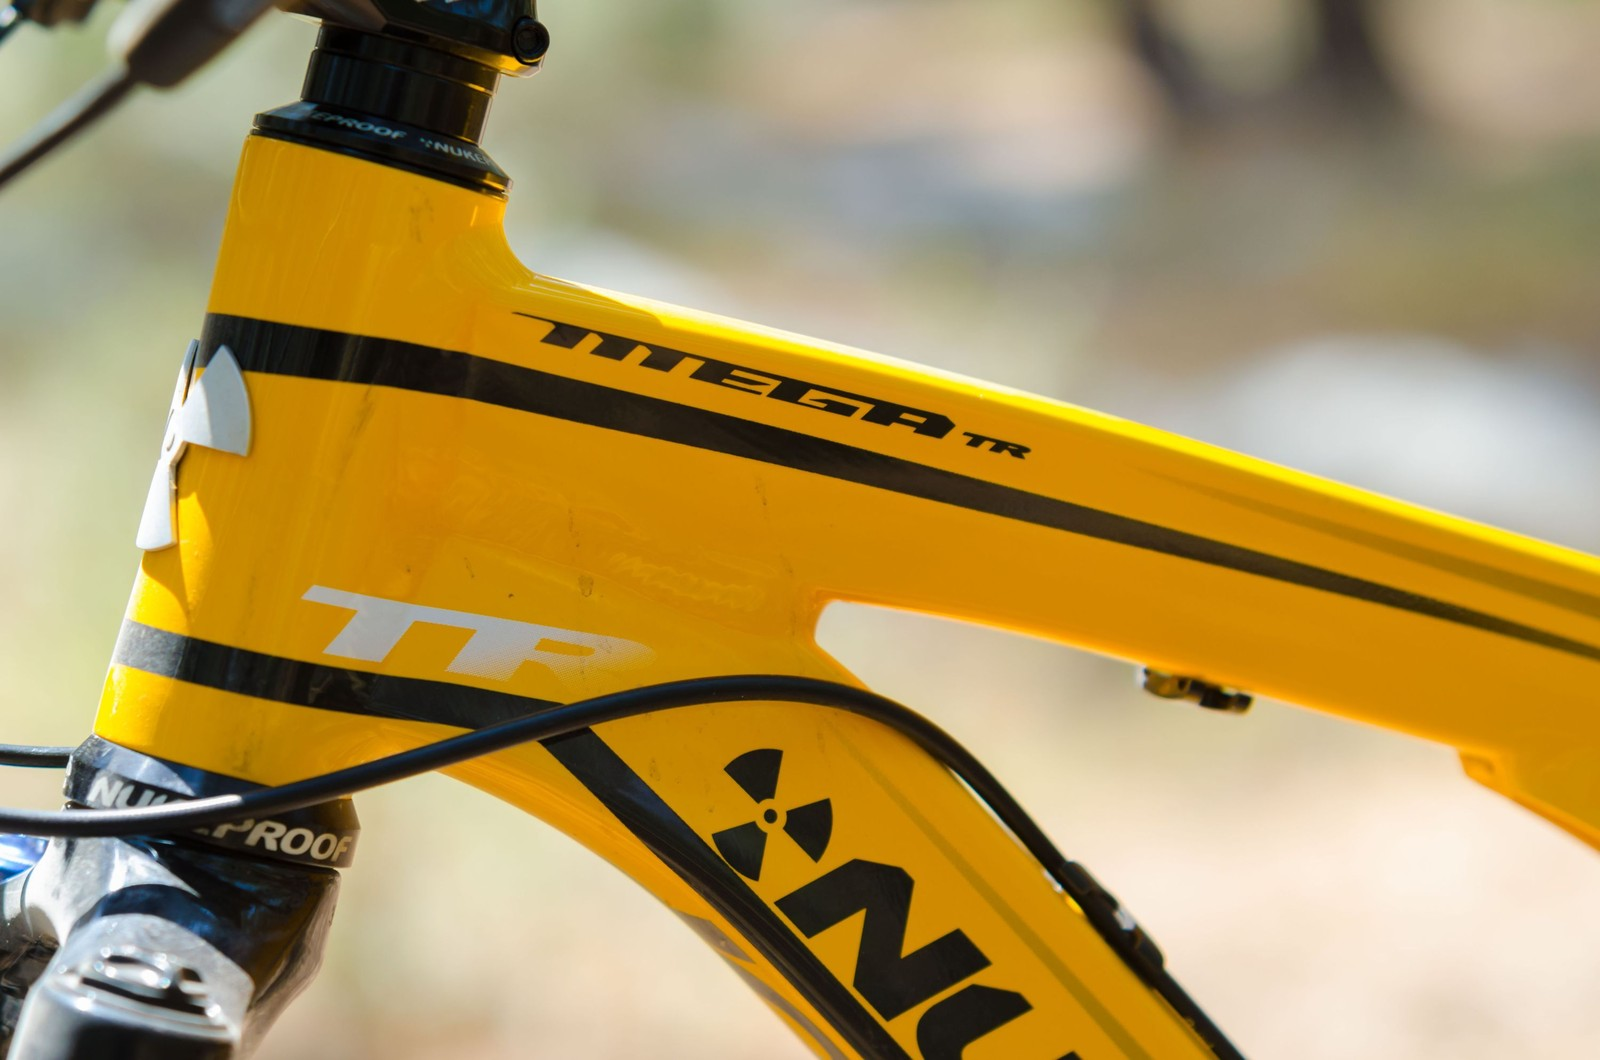 2013 Nukeproof Mega TR - Frame detail - iceman2058 - Mountain Biking Pictures - Vital MTB